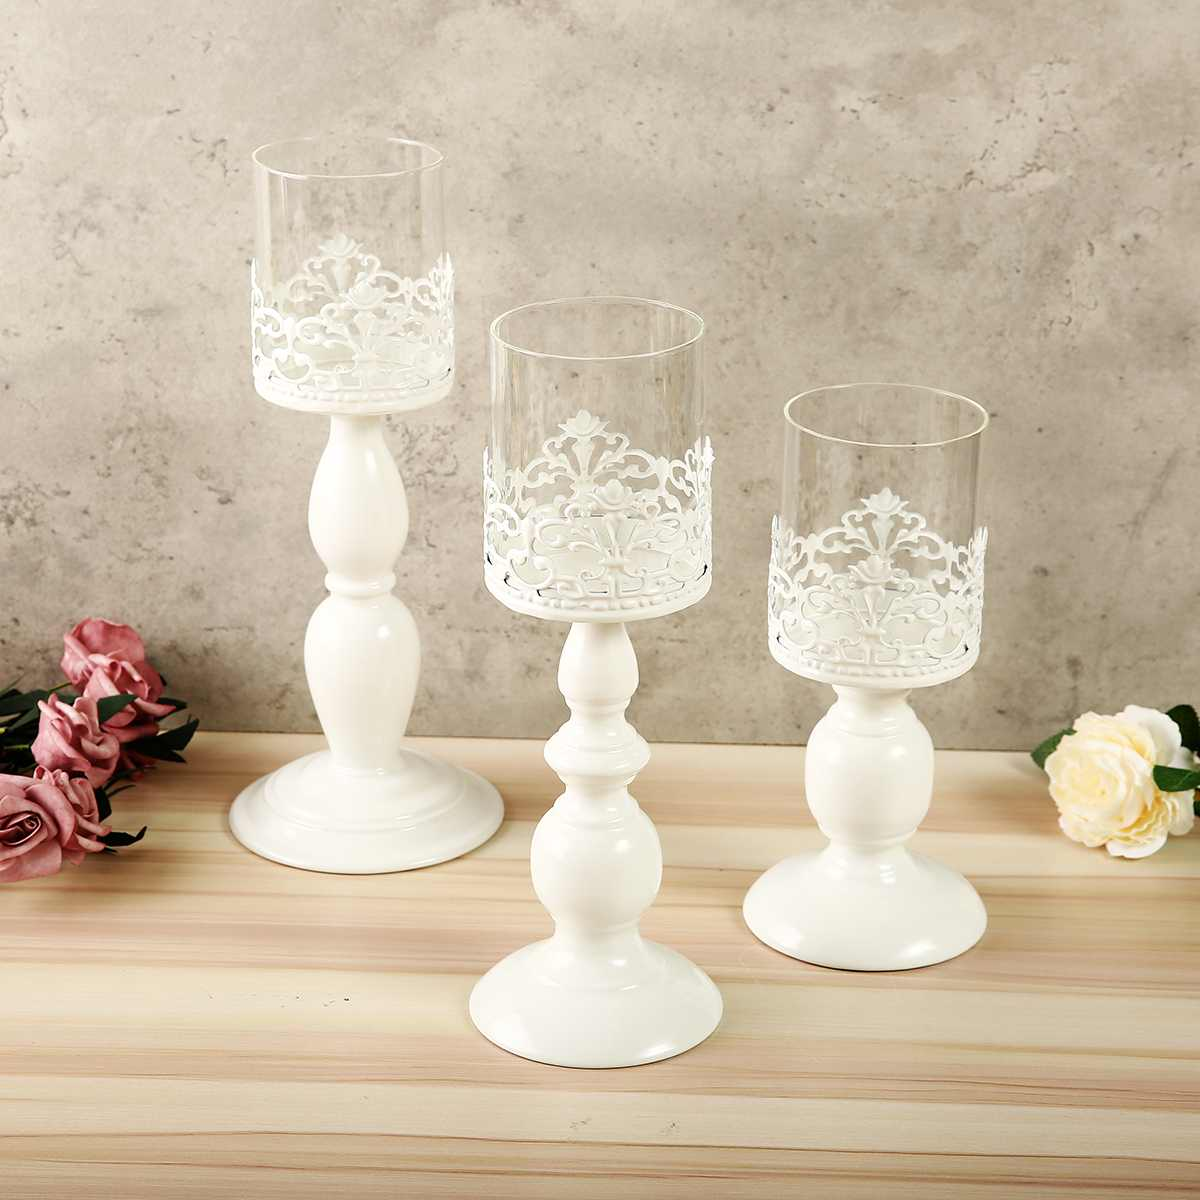 White Hollow Candle Holders Tealight Candlestick Vintage Candle Stand Wedding Decorations Gift